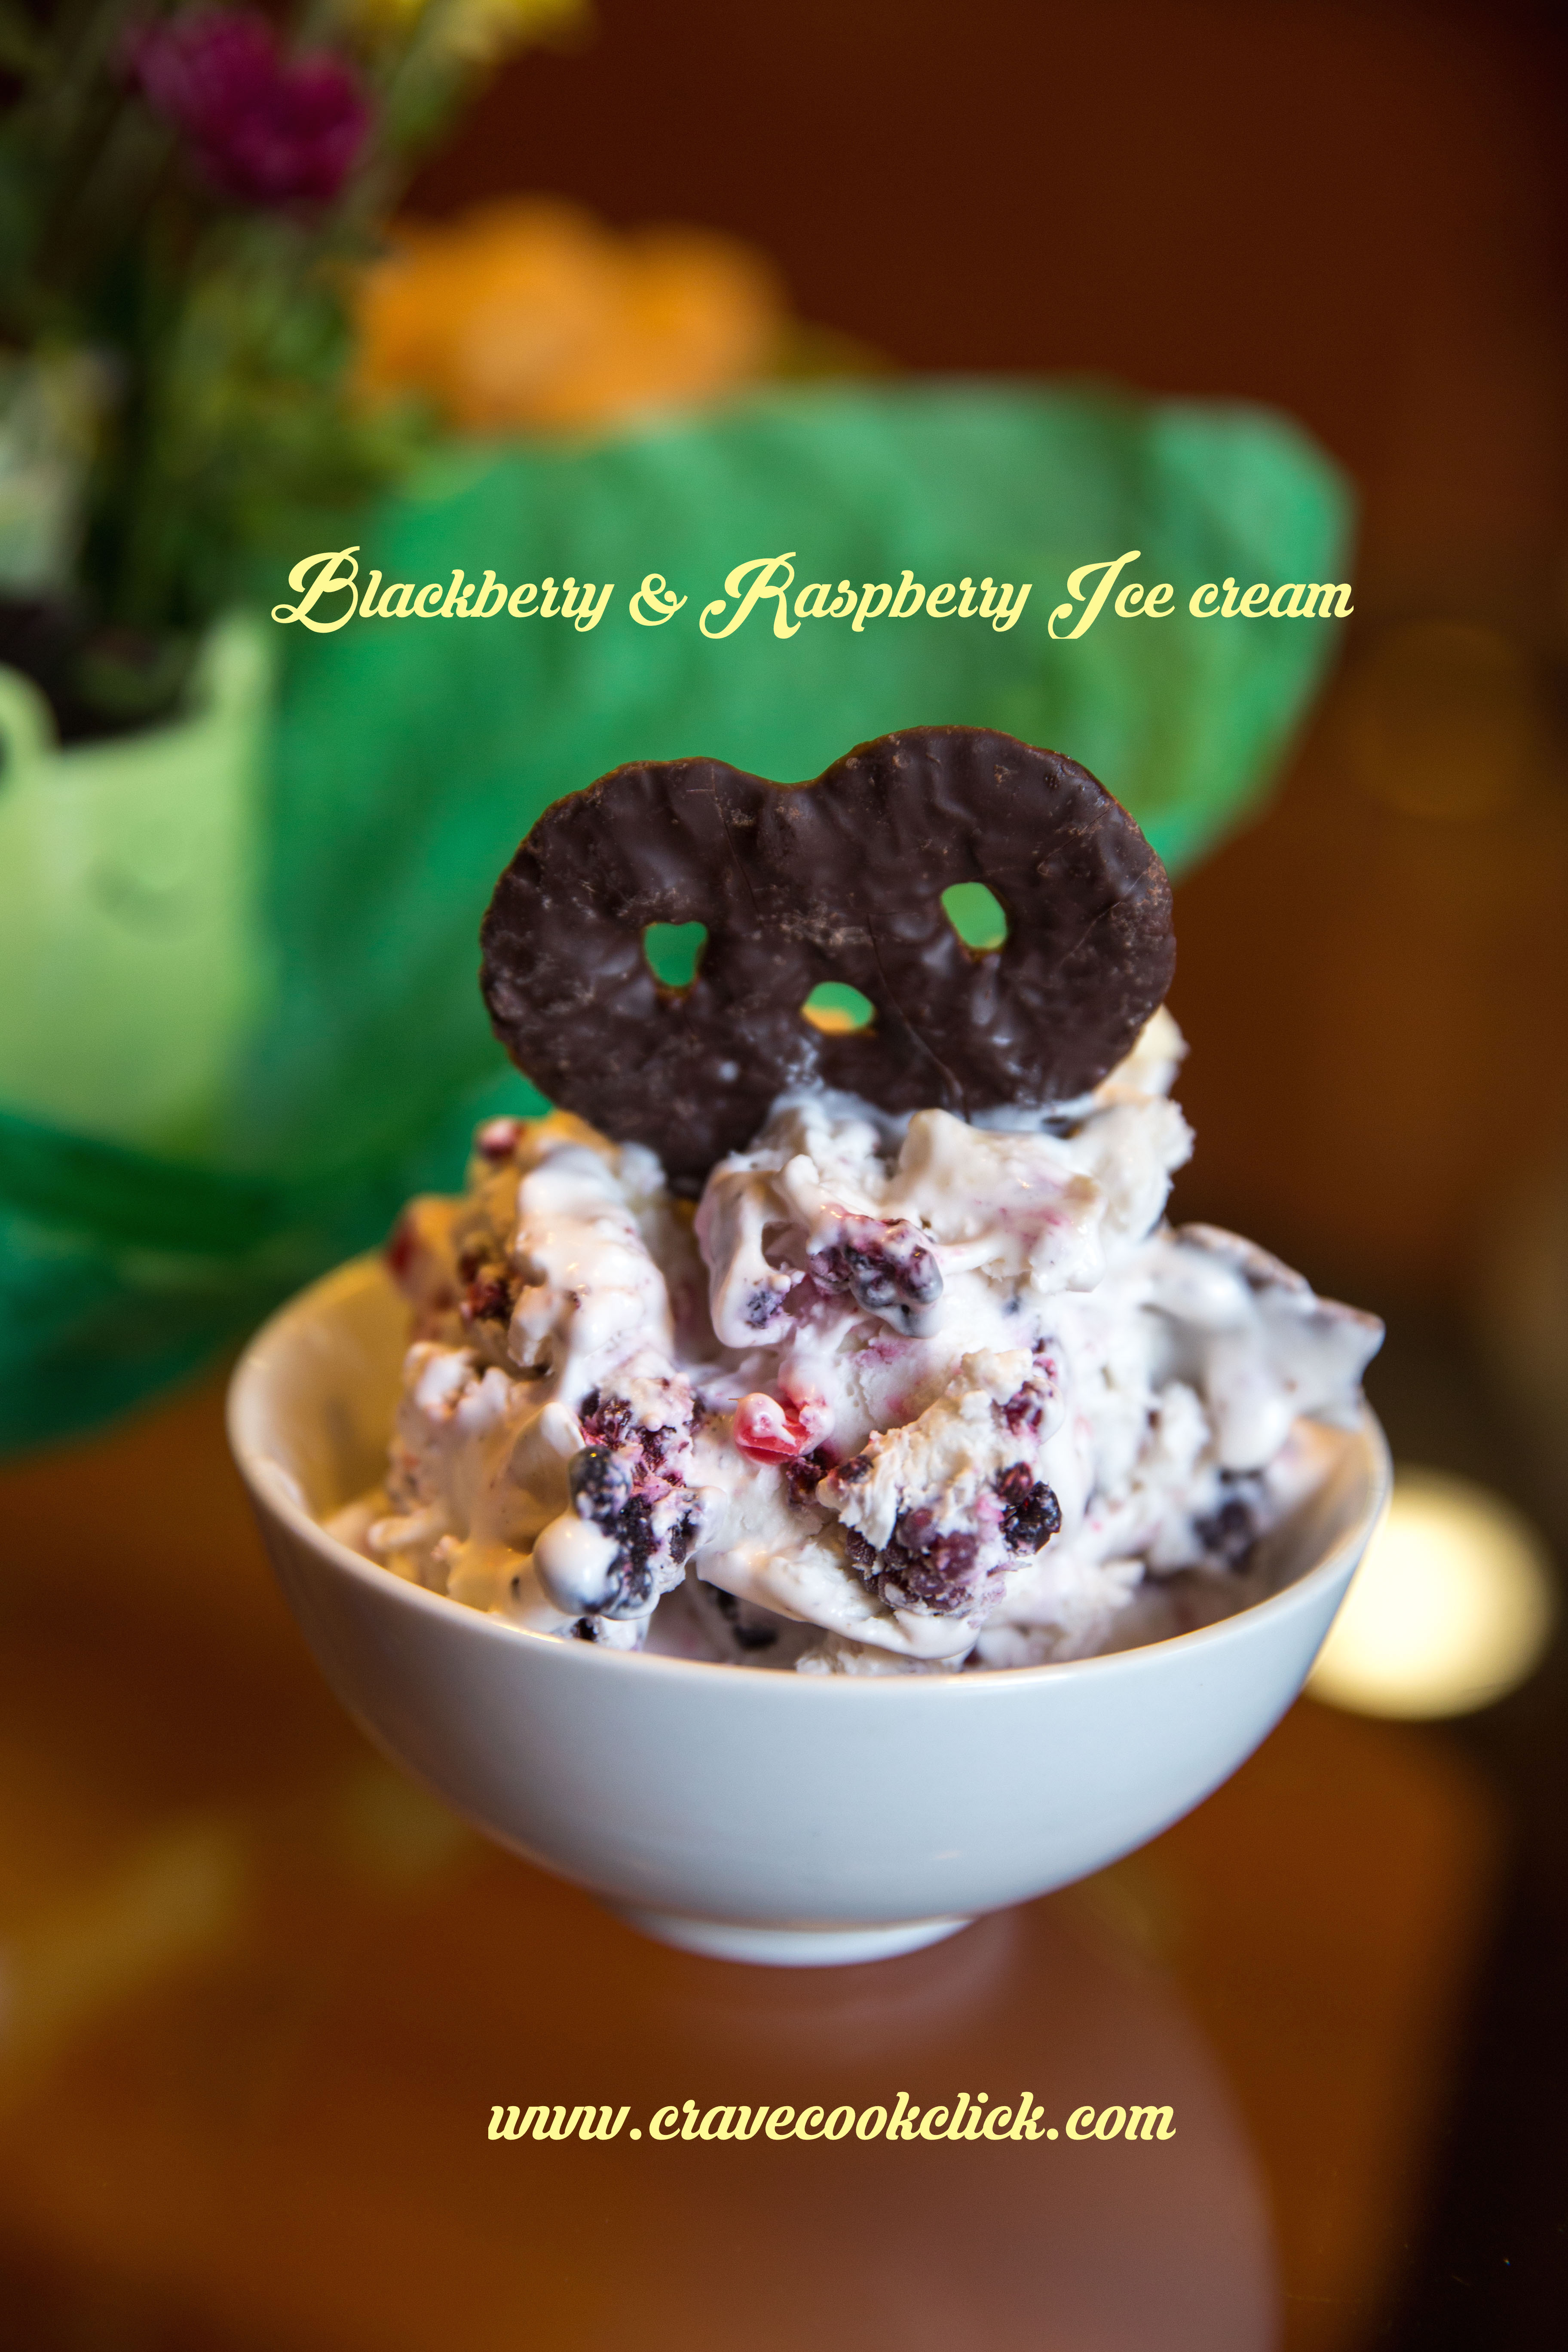 Blackberry & Raspberry Ice cream Recipe